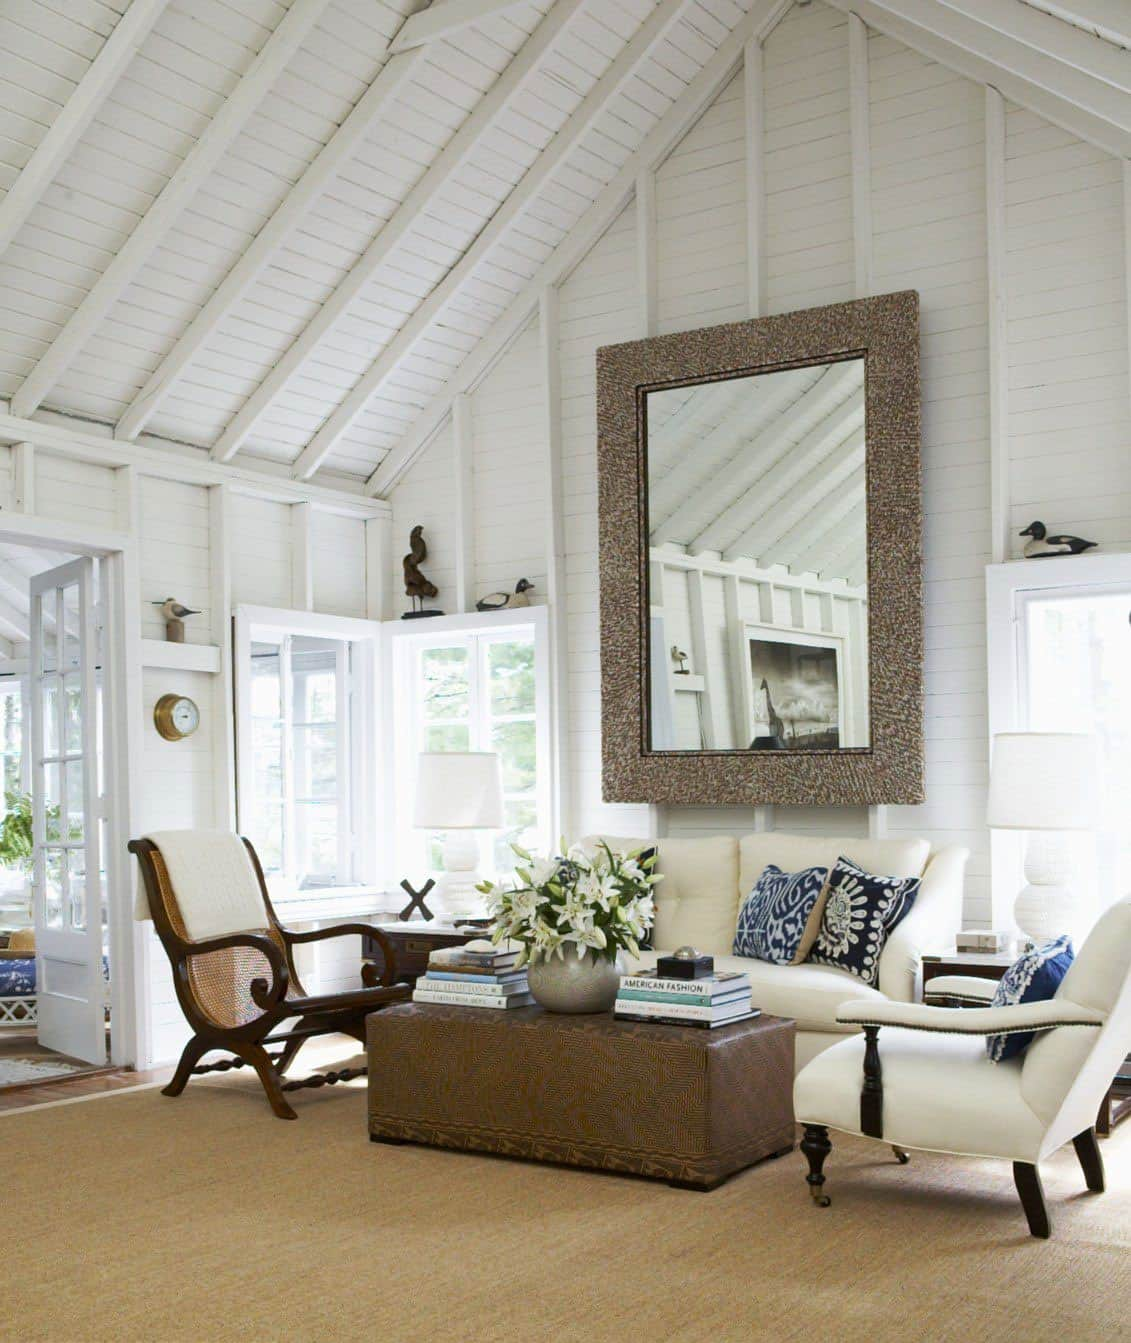 Lake Joseph Cottage-Anne Hepfer-01-1 Kindesign